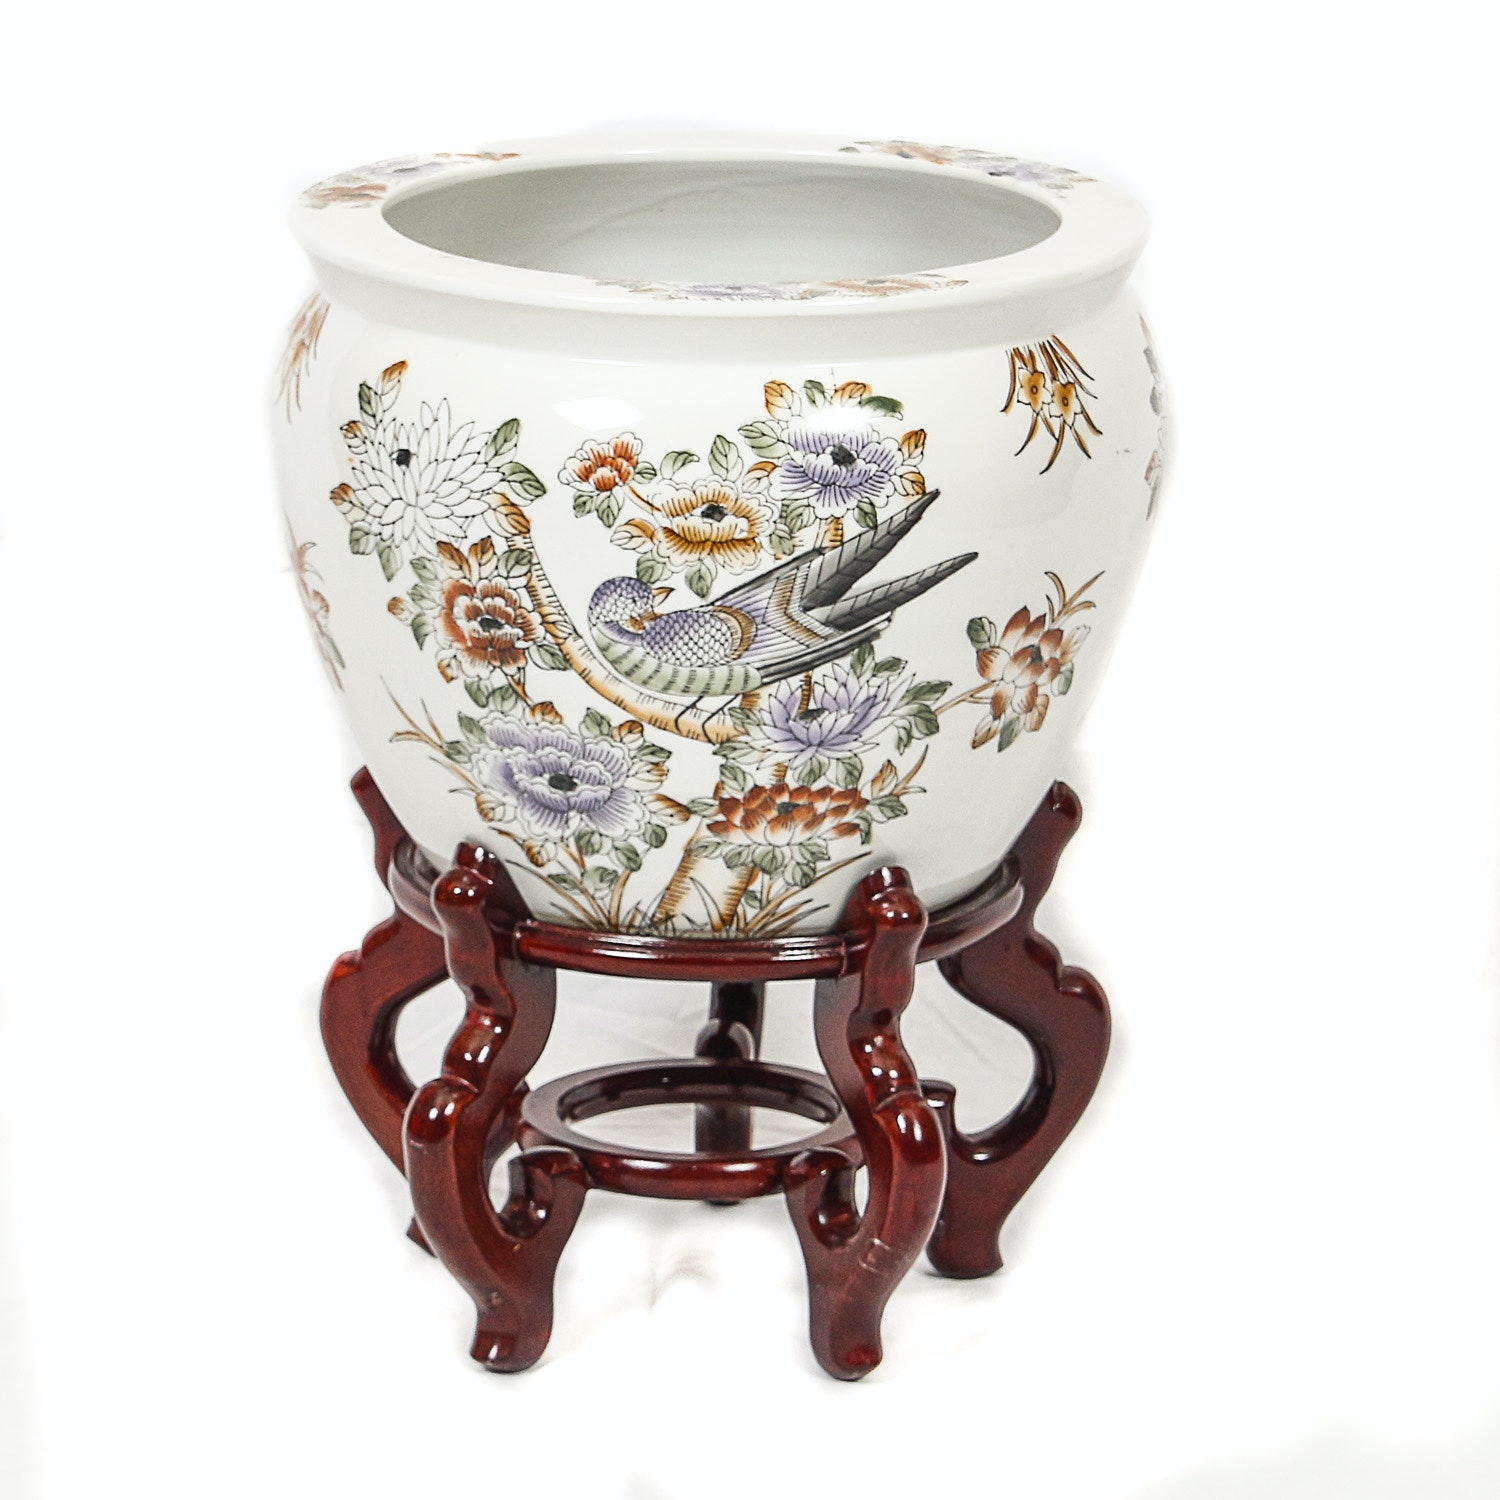 Chinese Hand-Painted Floral and Avian Themed Porcelain Planter with Wooden Stand